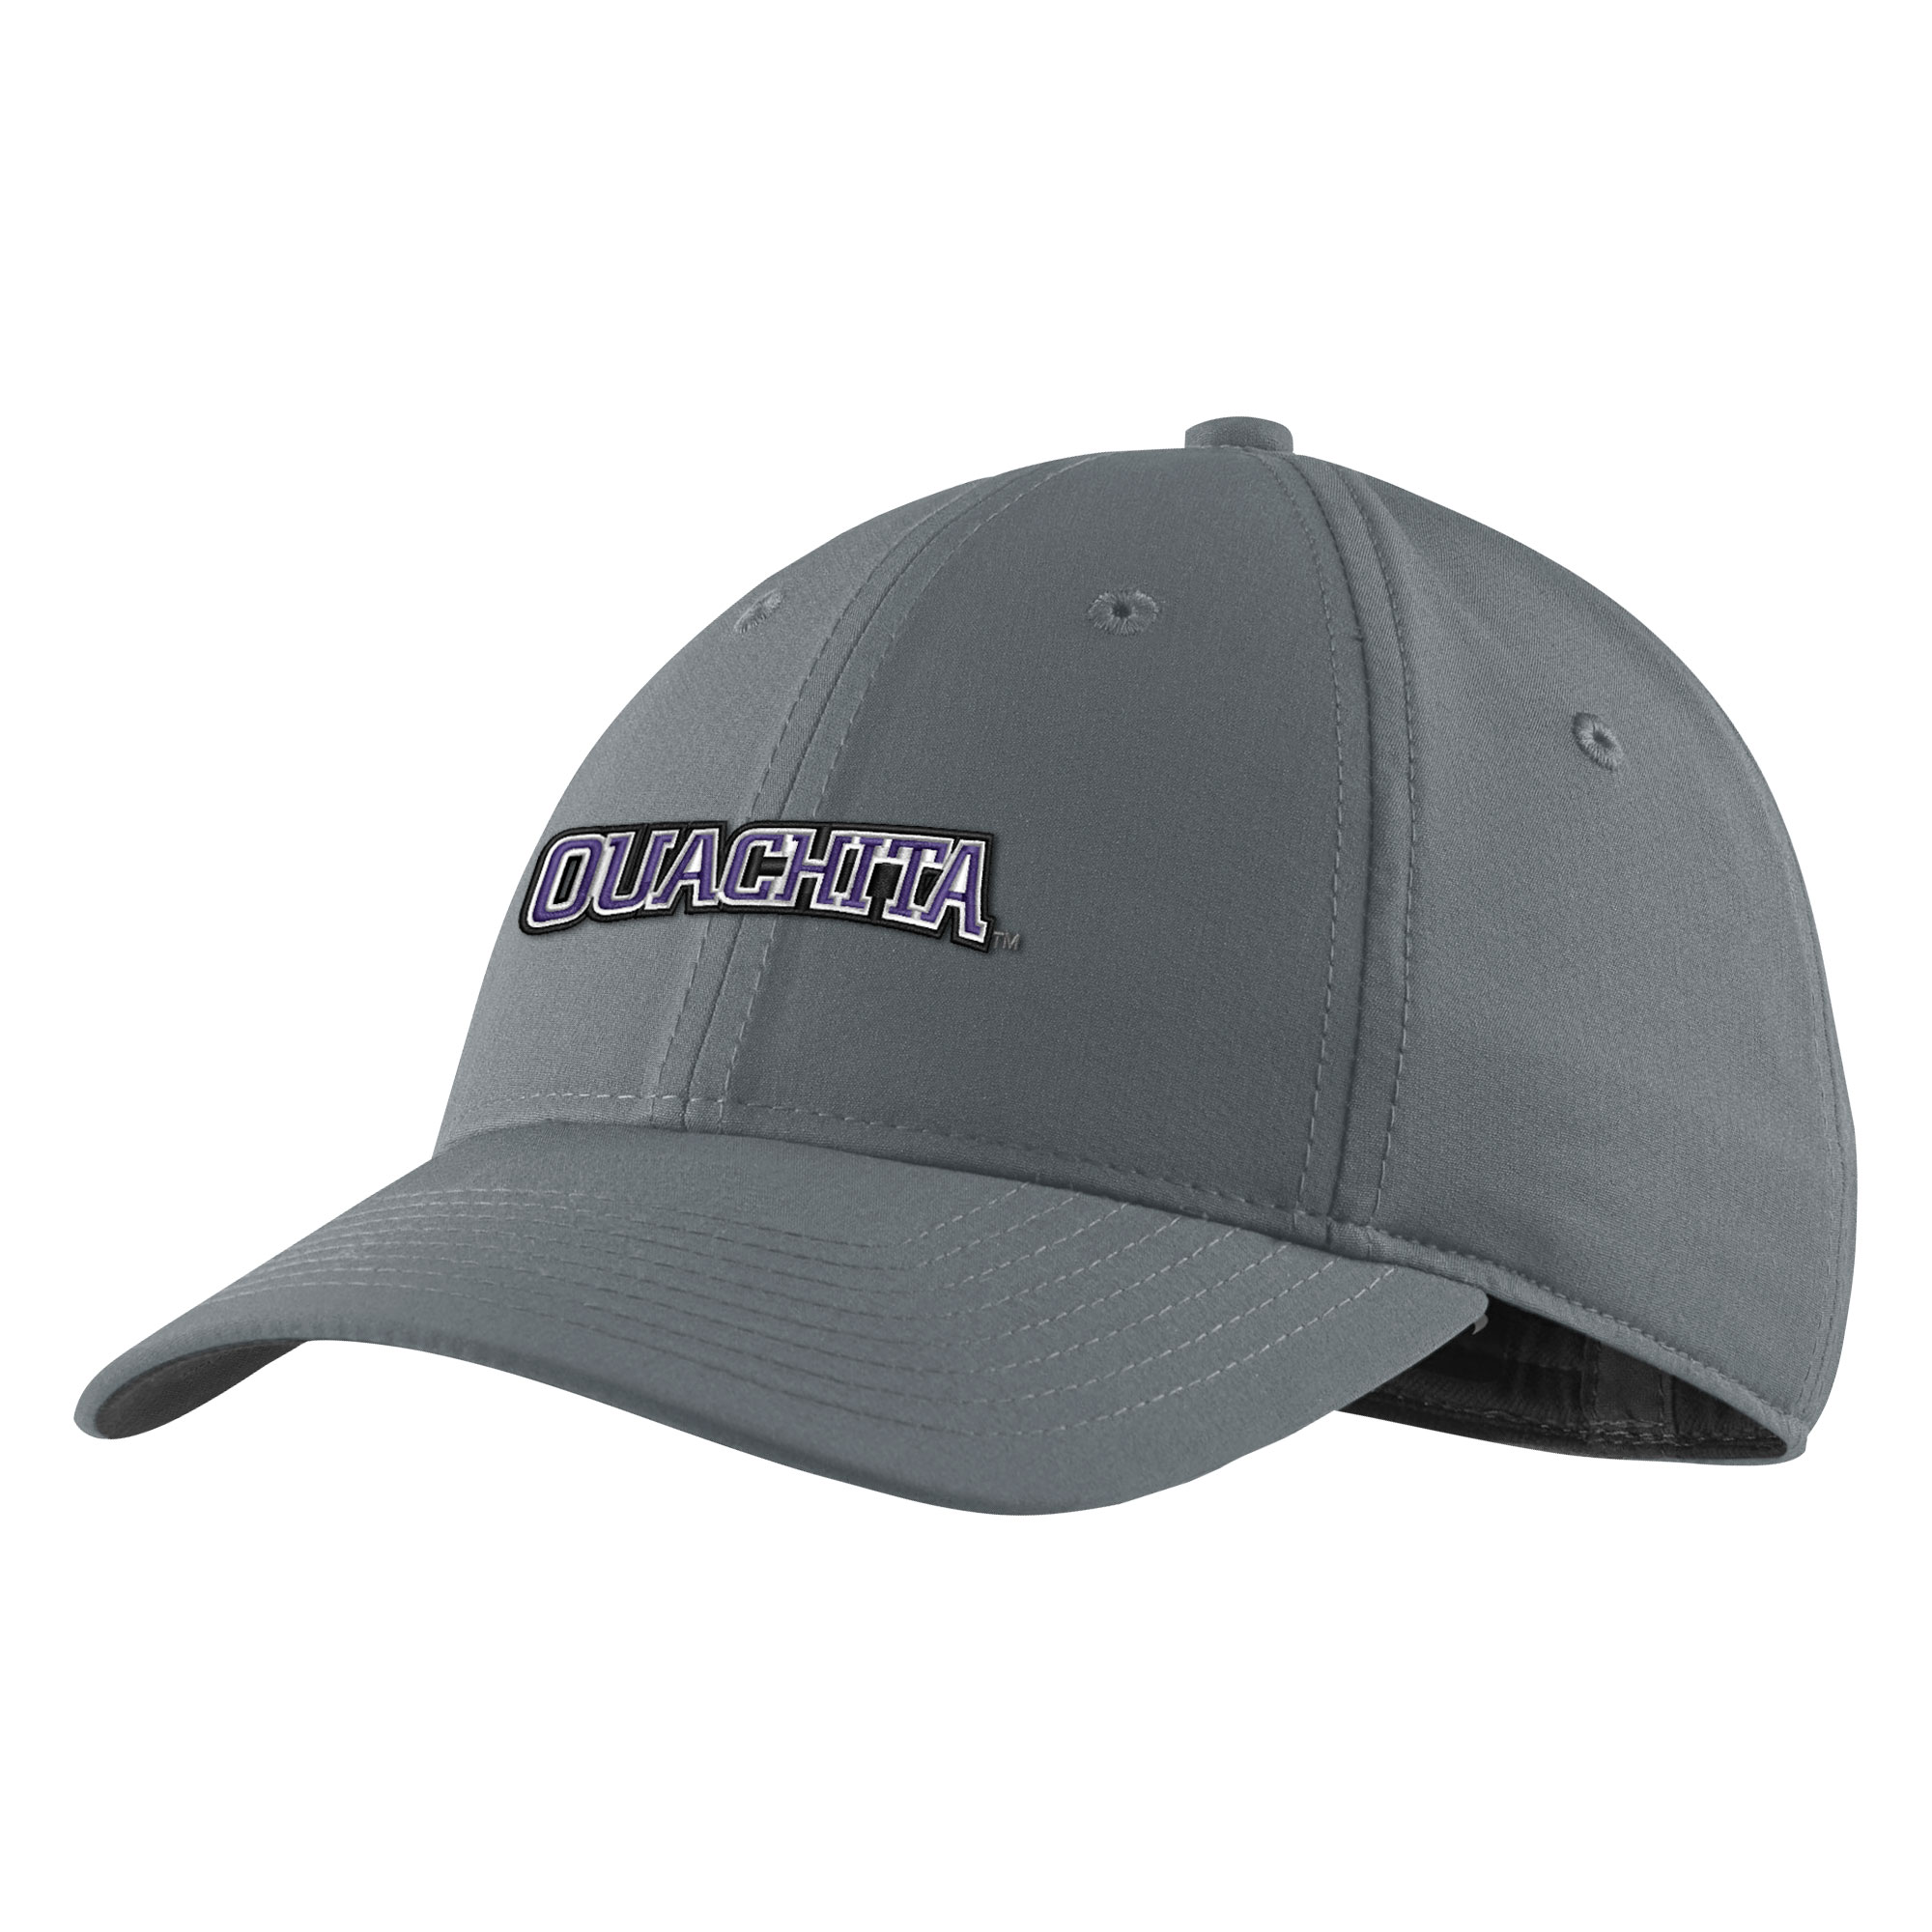 OUACHITA WORDMARK NIKE GOLF FLEX CAP